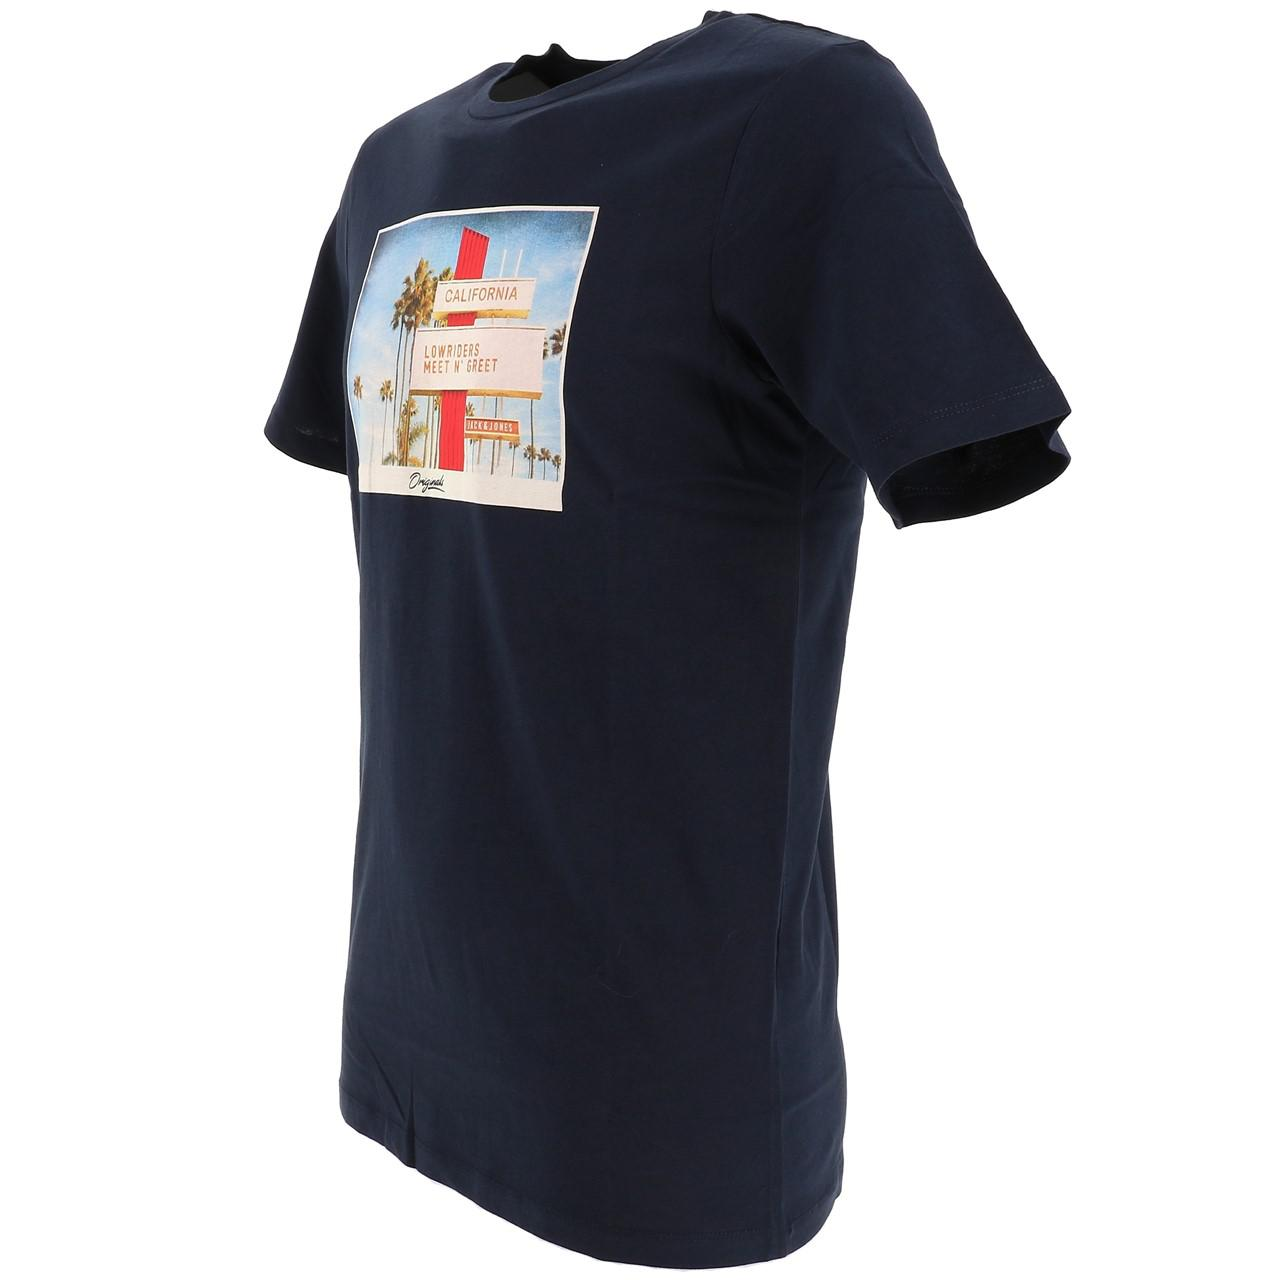 Short-Jack-and-jones-Hotel-Total-Eclipse-Tee-Blue-18535-Does-Not thumbnail 4